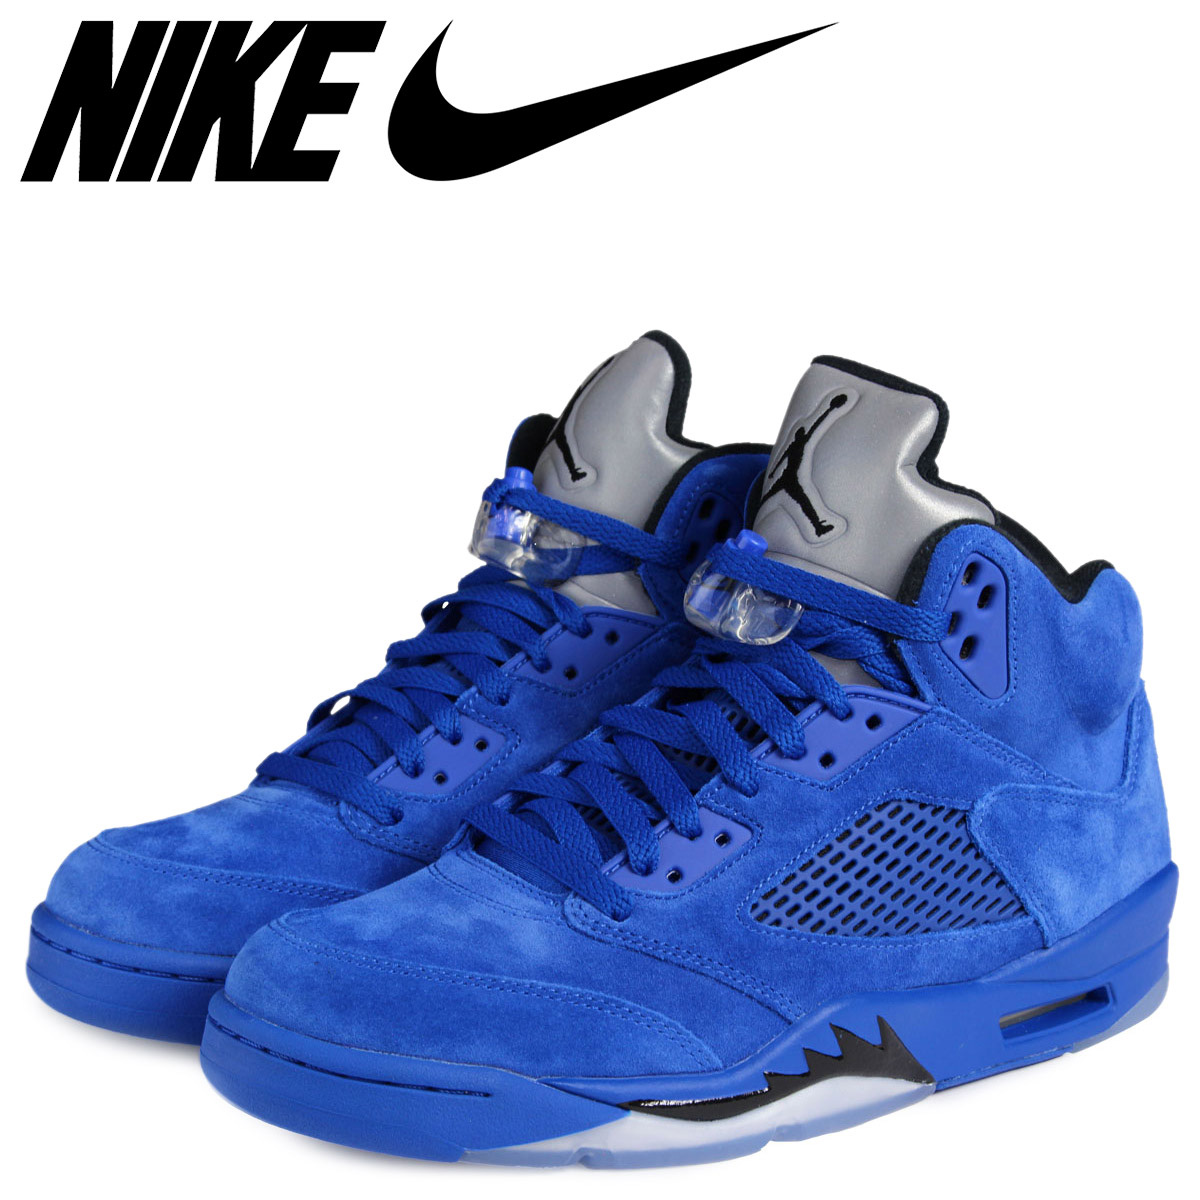 promo code 125d7 cf63f NIKE Nike Air Jordan 5 nostalgic sneakers AIR JORDAN 5 RETRO BLUE SUEDE  136,027-401 men's shoes blue